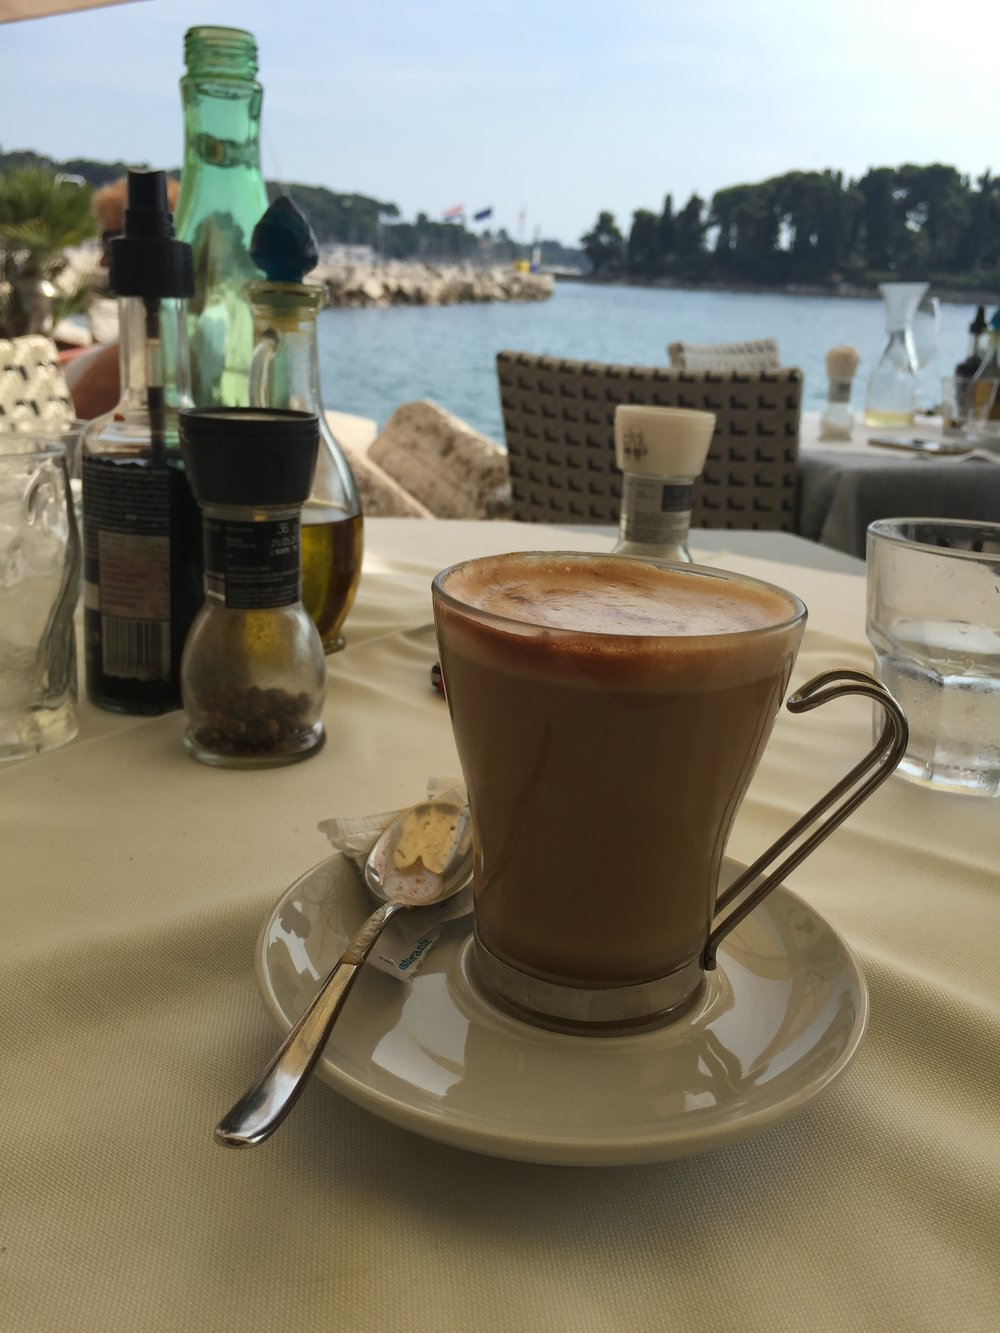 Enjoying a White Coffee by the Croatian seaside! Traveling Newbies